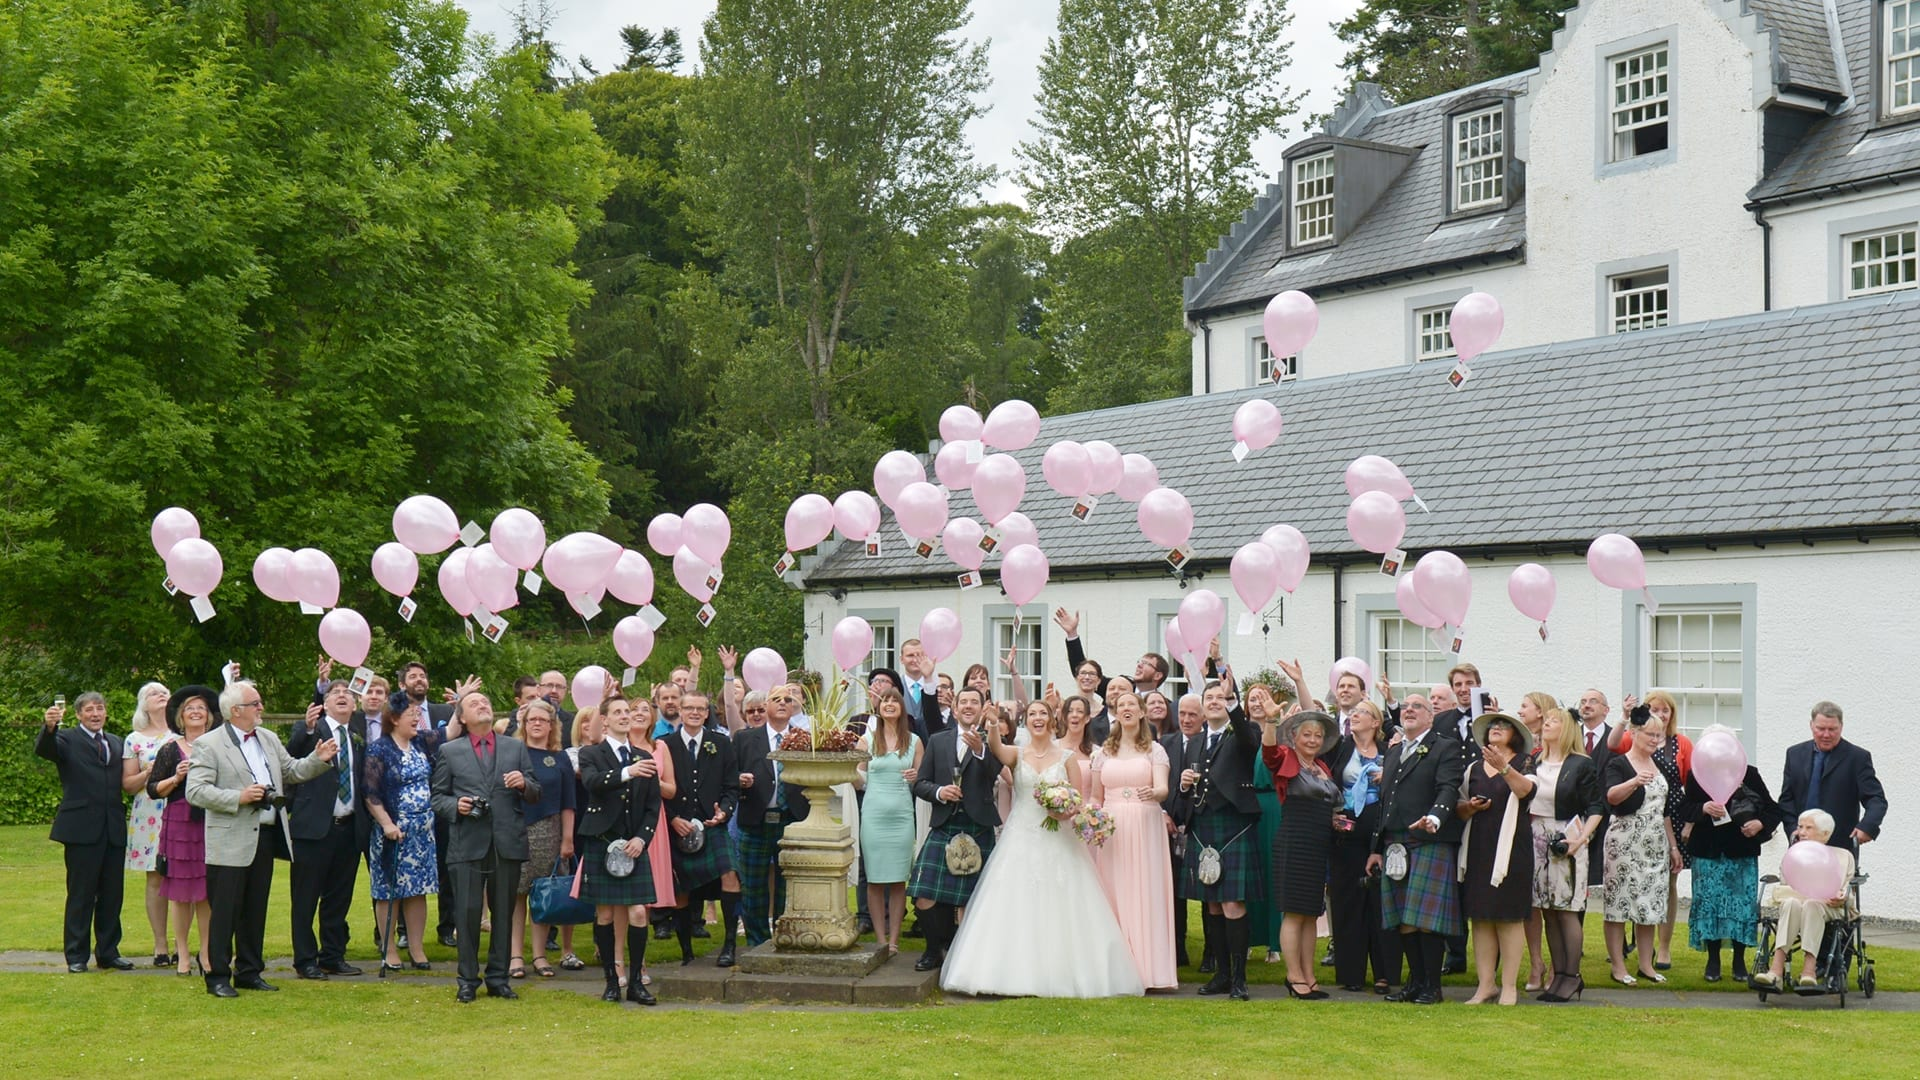 Wedding guests release balloons at Barony Castle